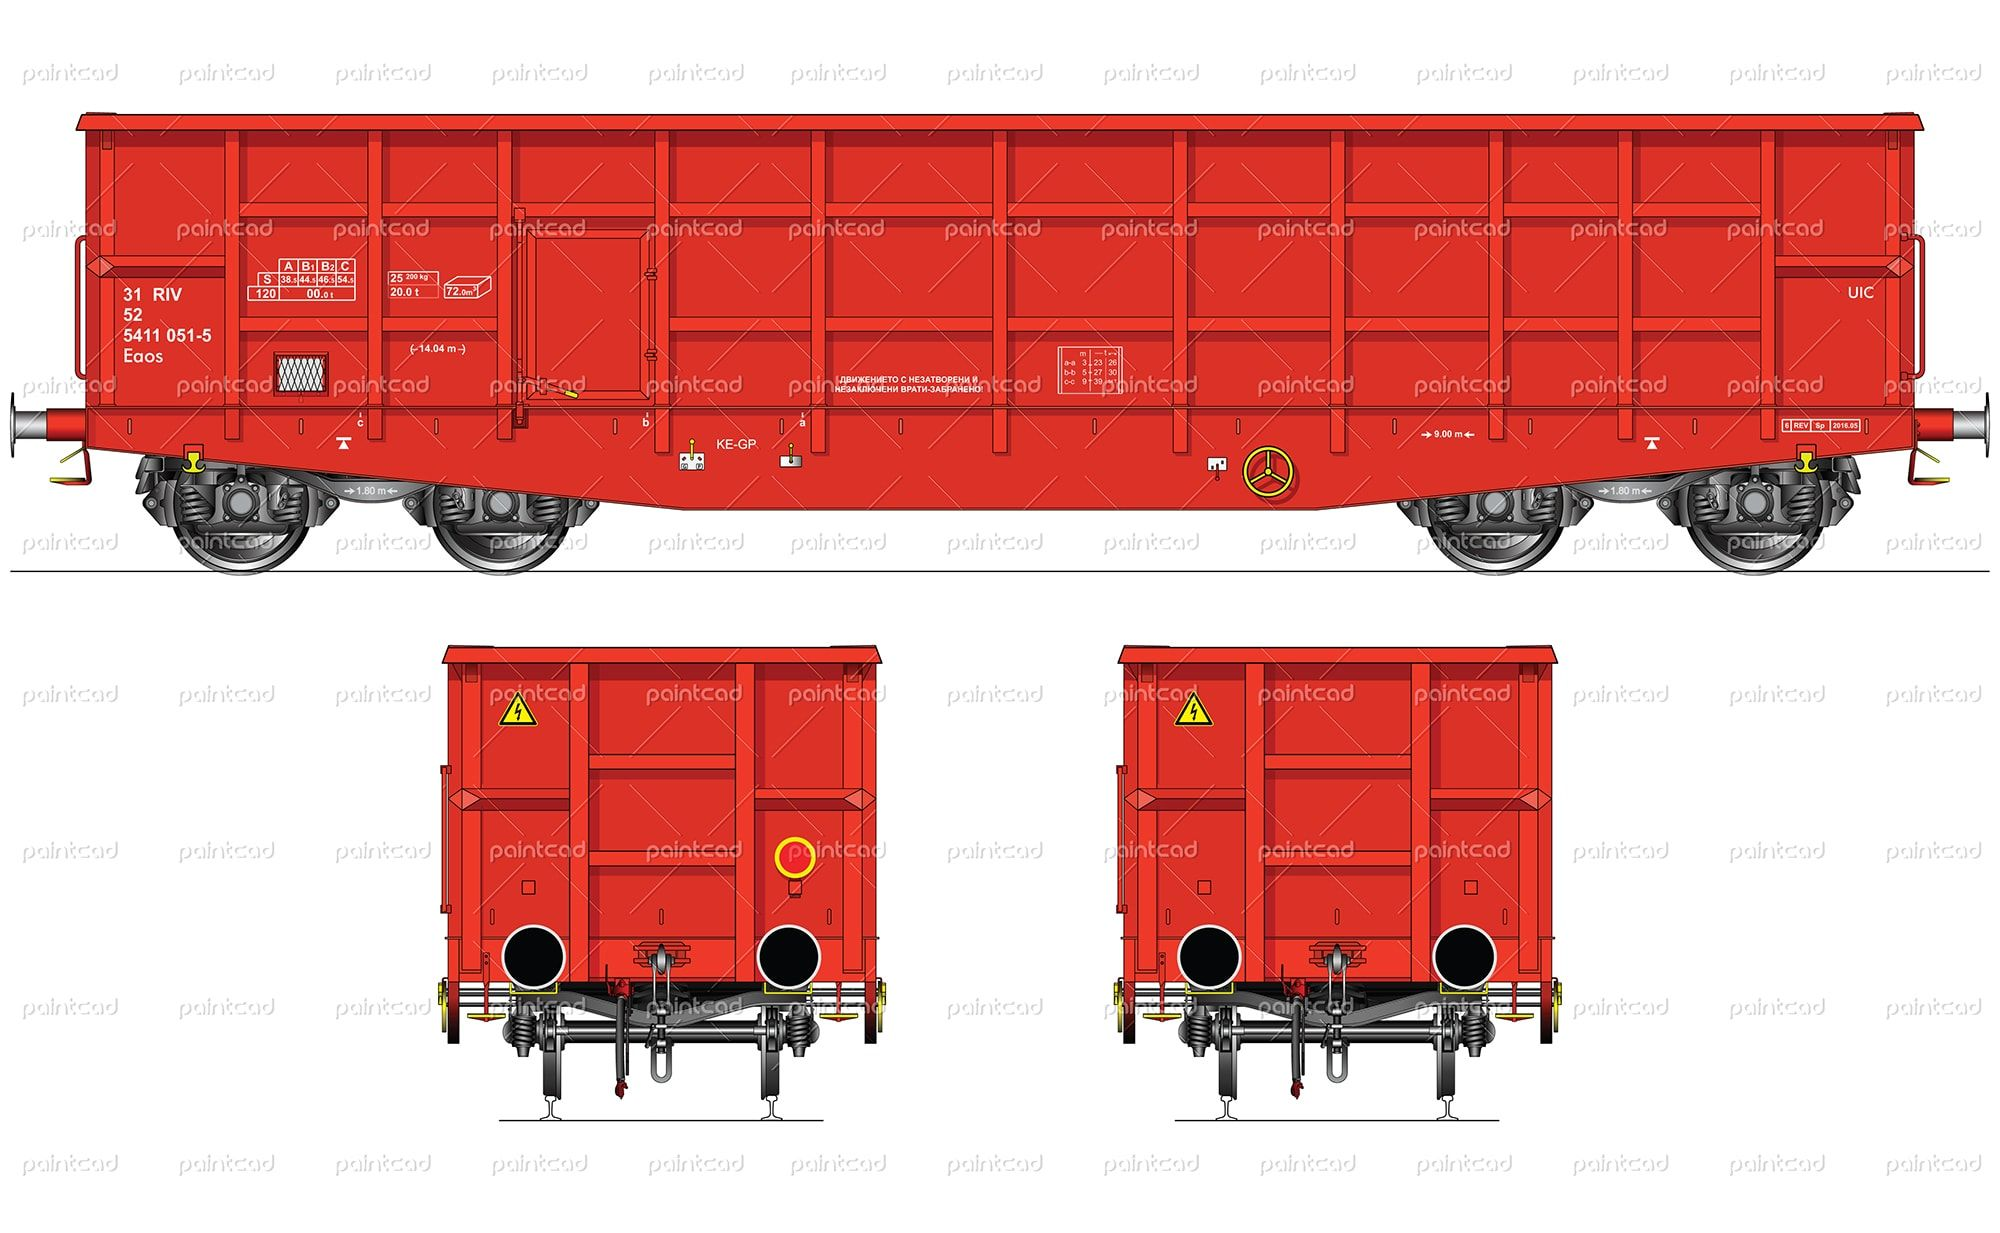 Vector illustration of red freight wagon type Eaos - ordinary open high-sided wagon for